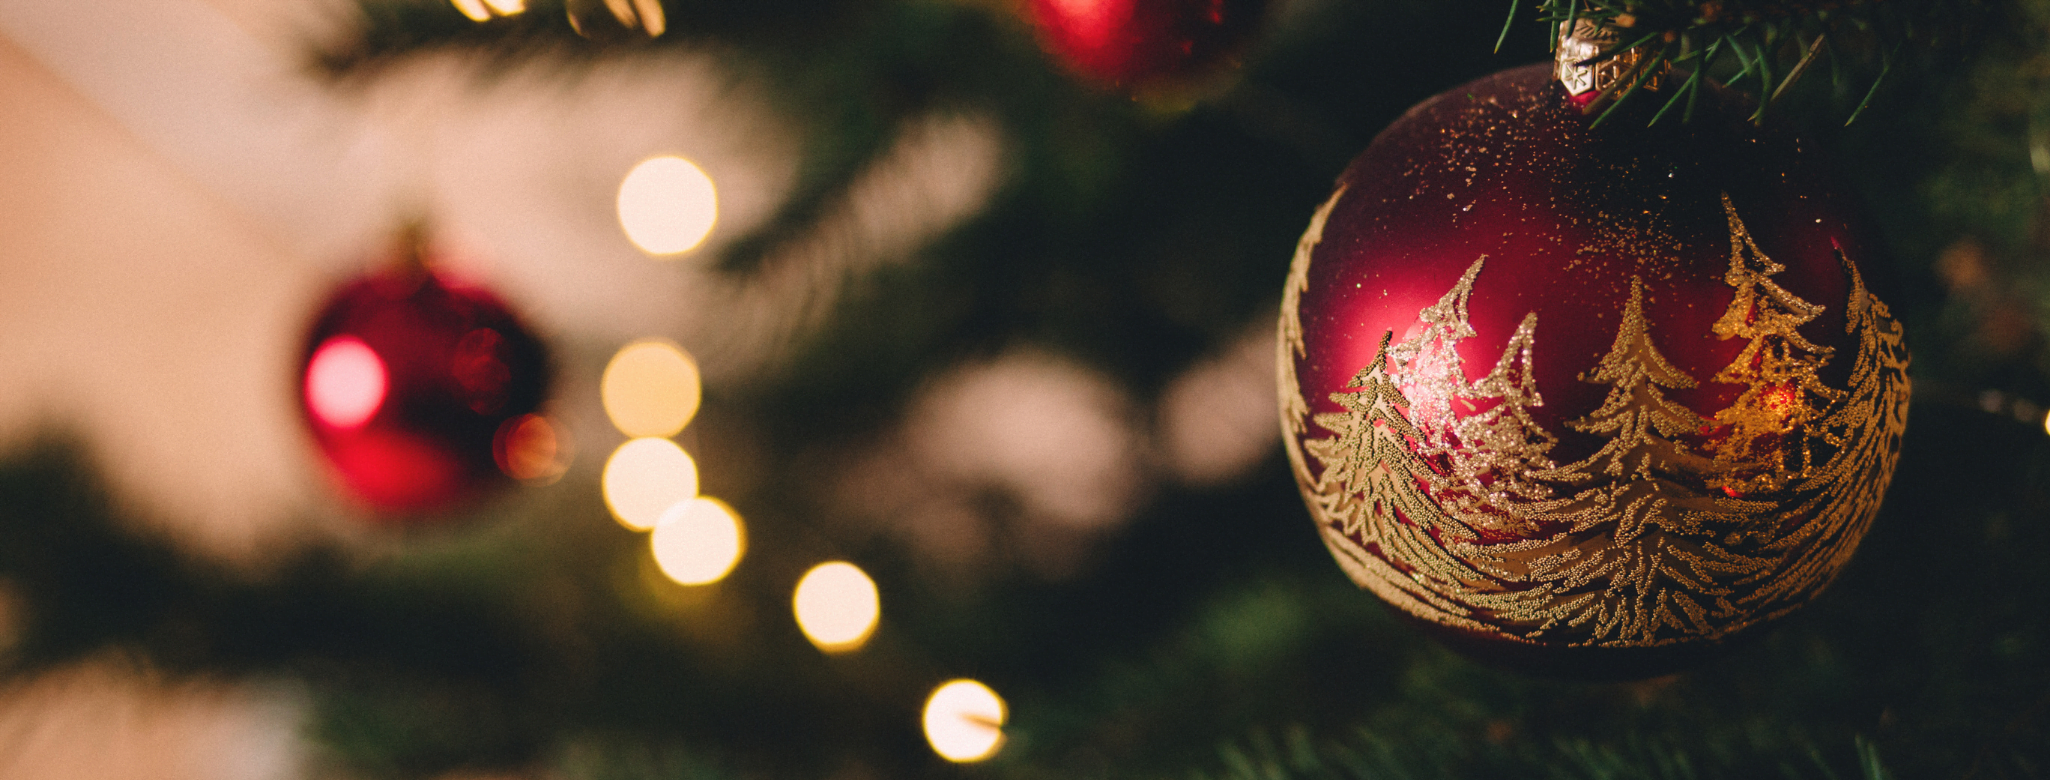 How to Preserve Your Decorations for Future Holiday Seasons